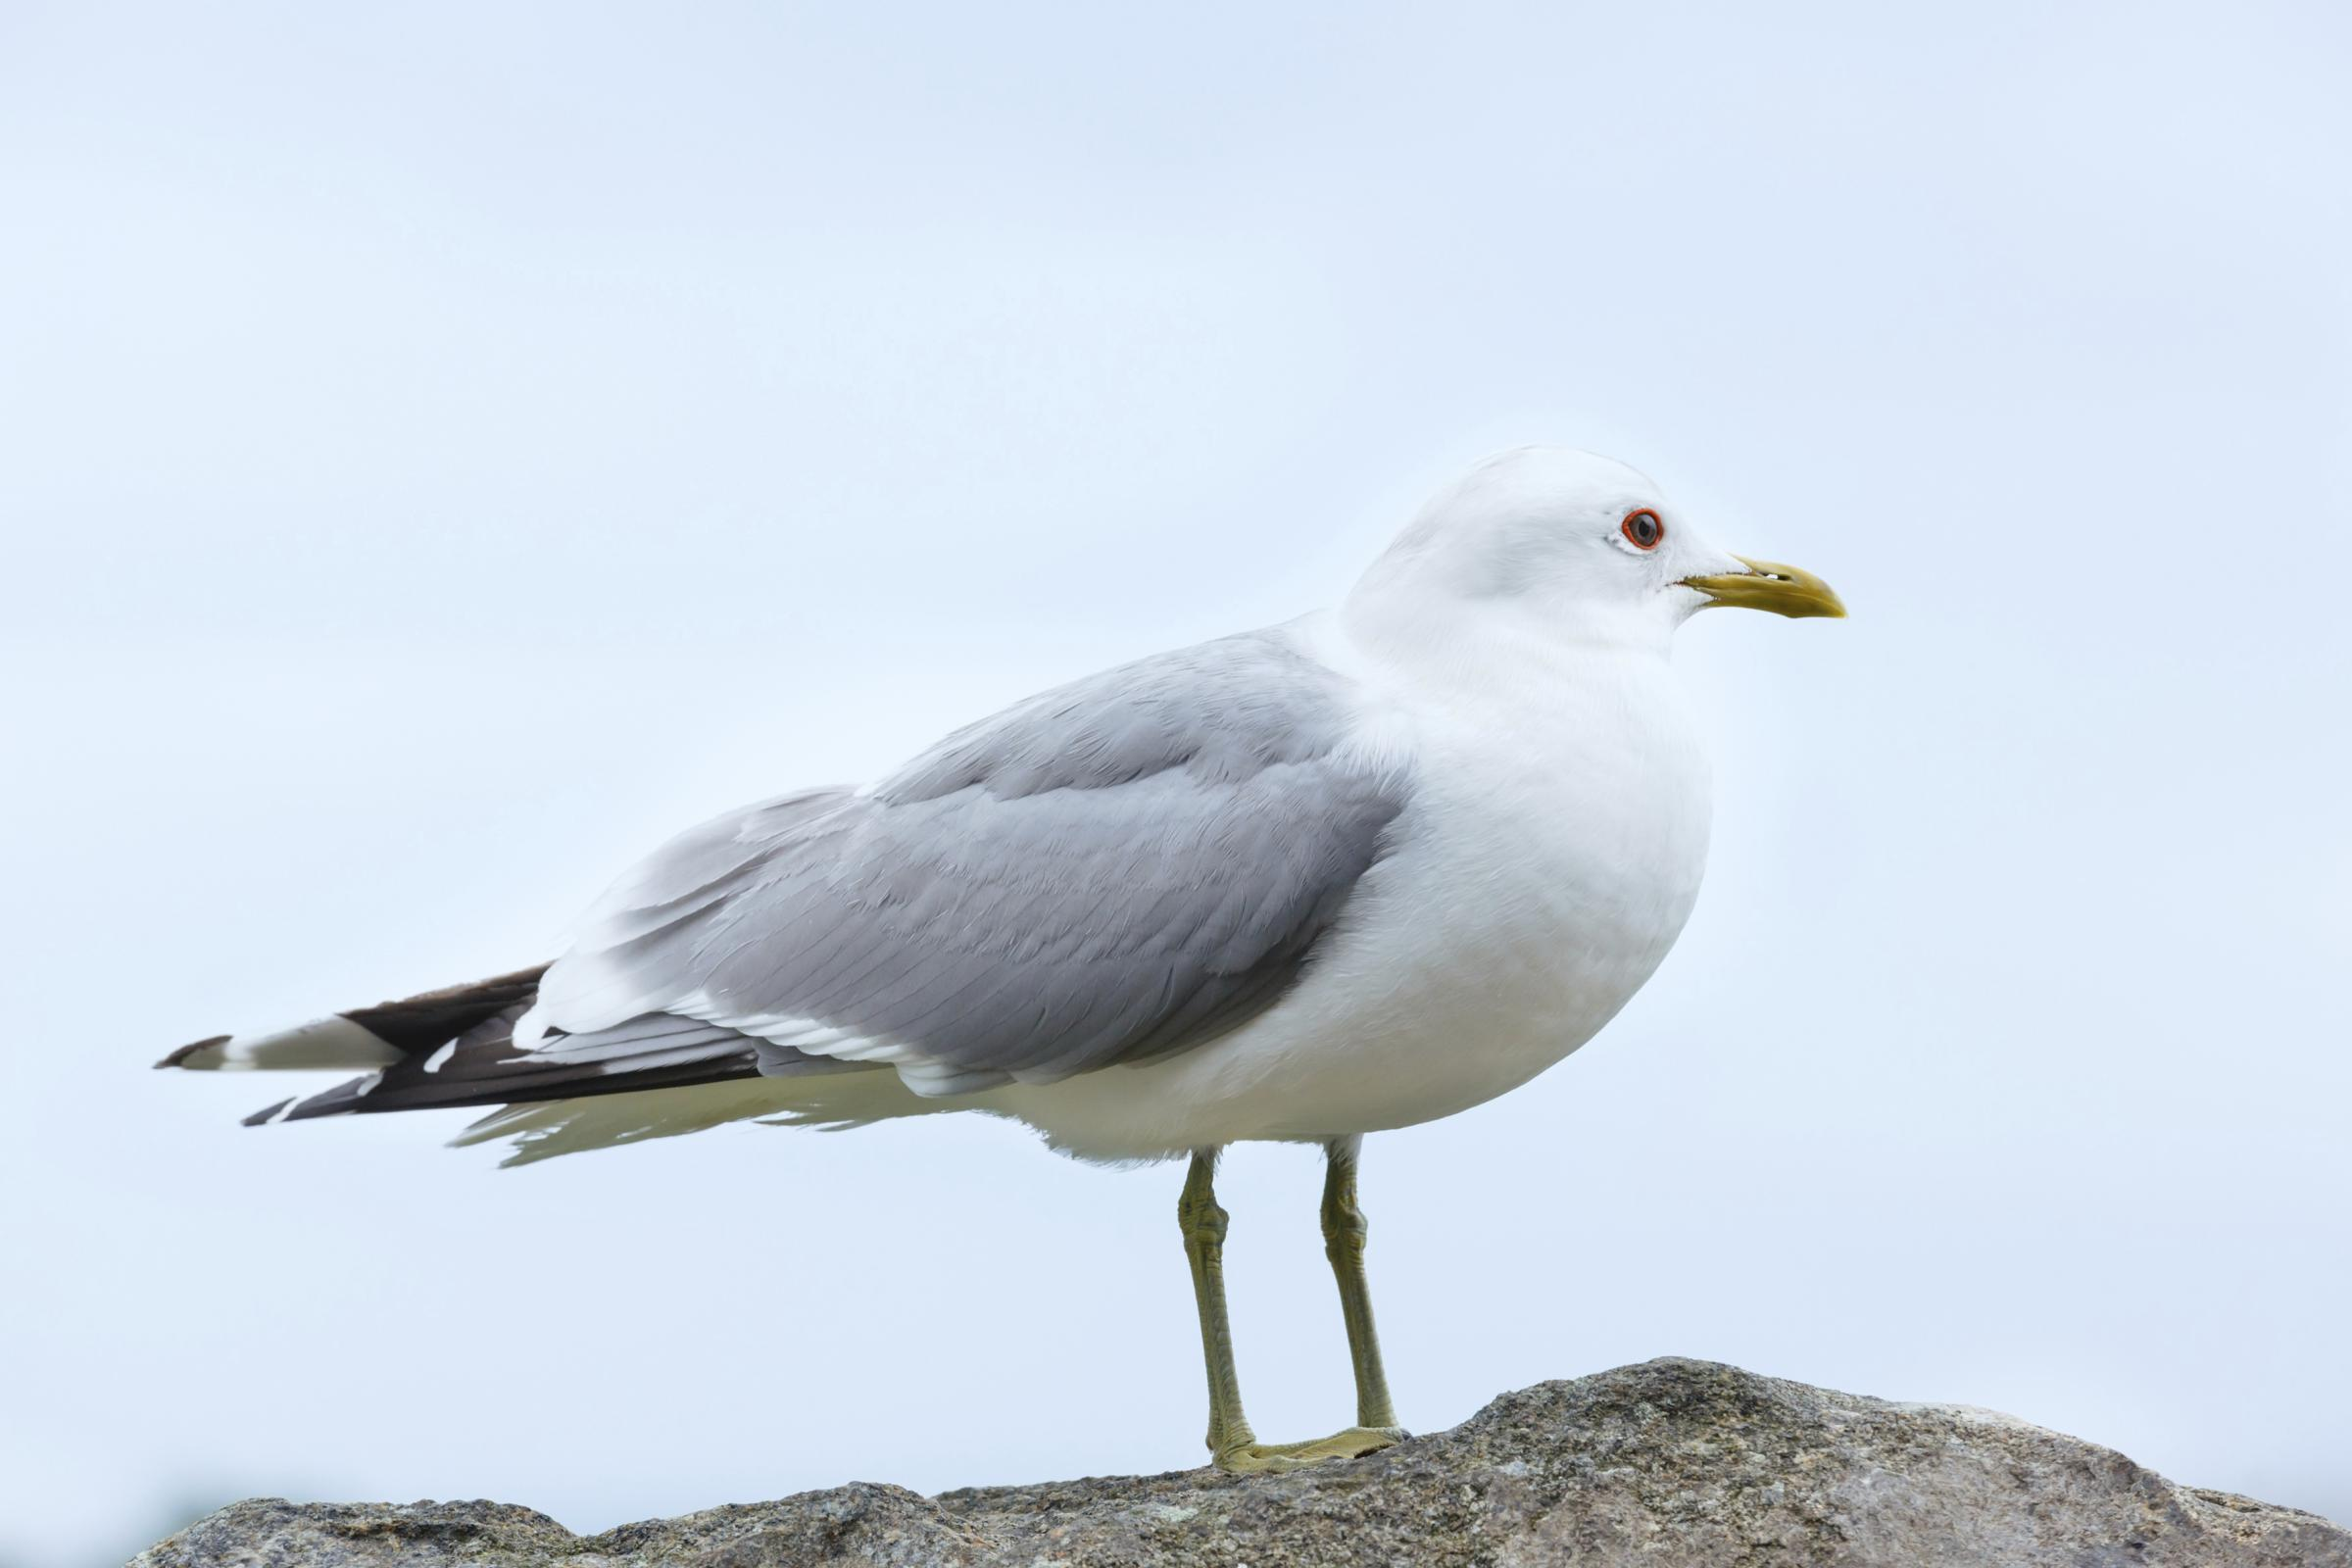 Fresh campaign aims to tackle seagulls problem in Worcester